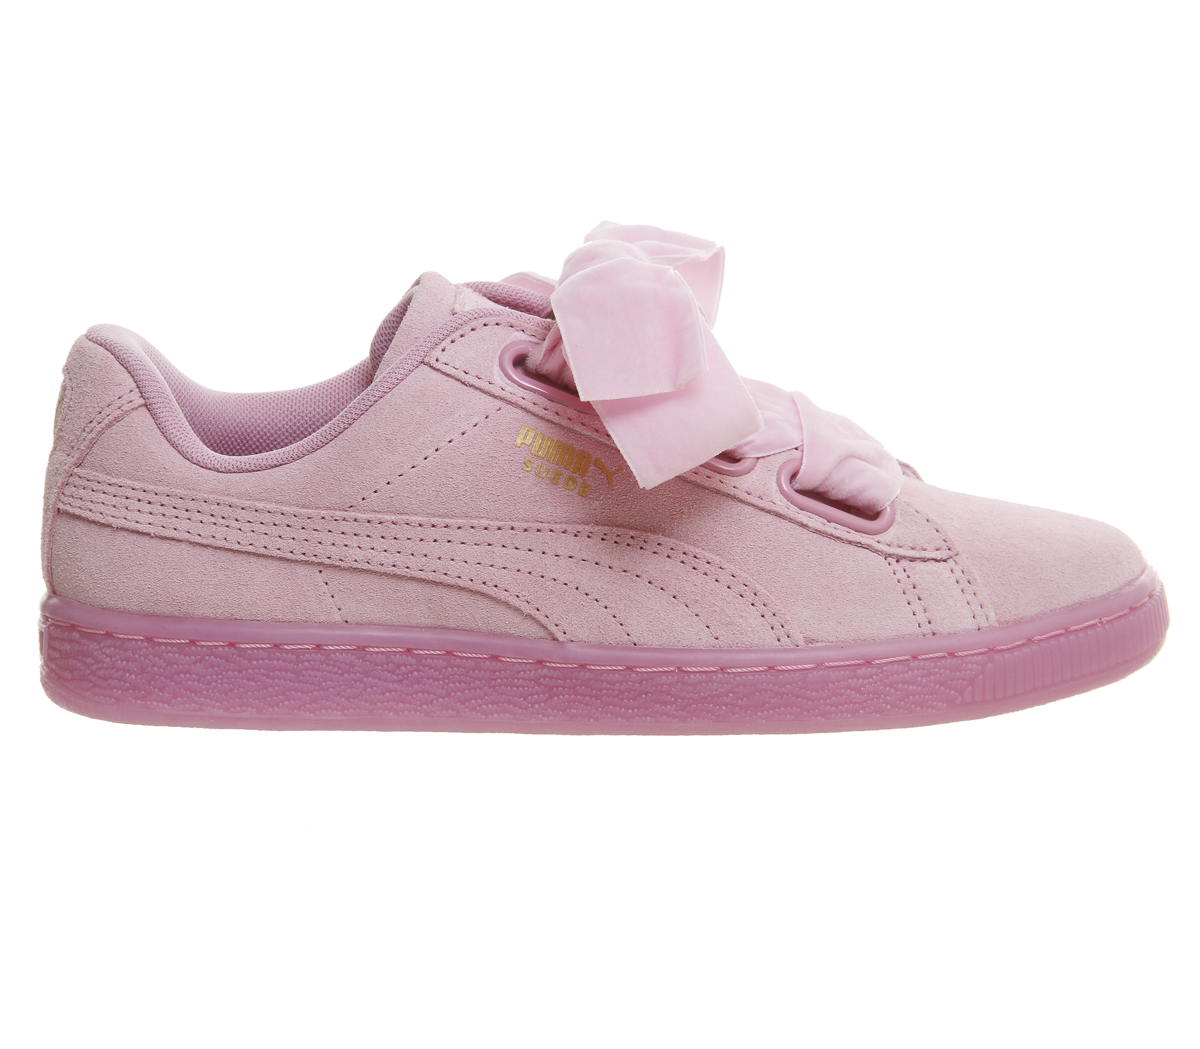 Womens Puma Suede Heart PRISM PINK Trainers Shoes | eBay